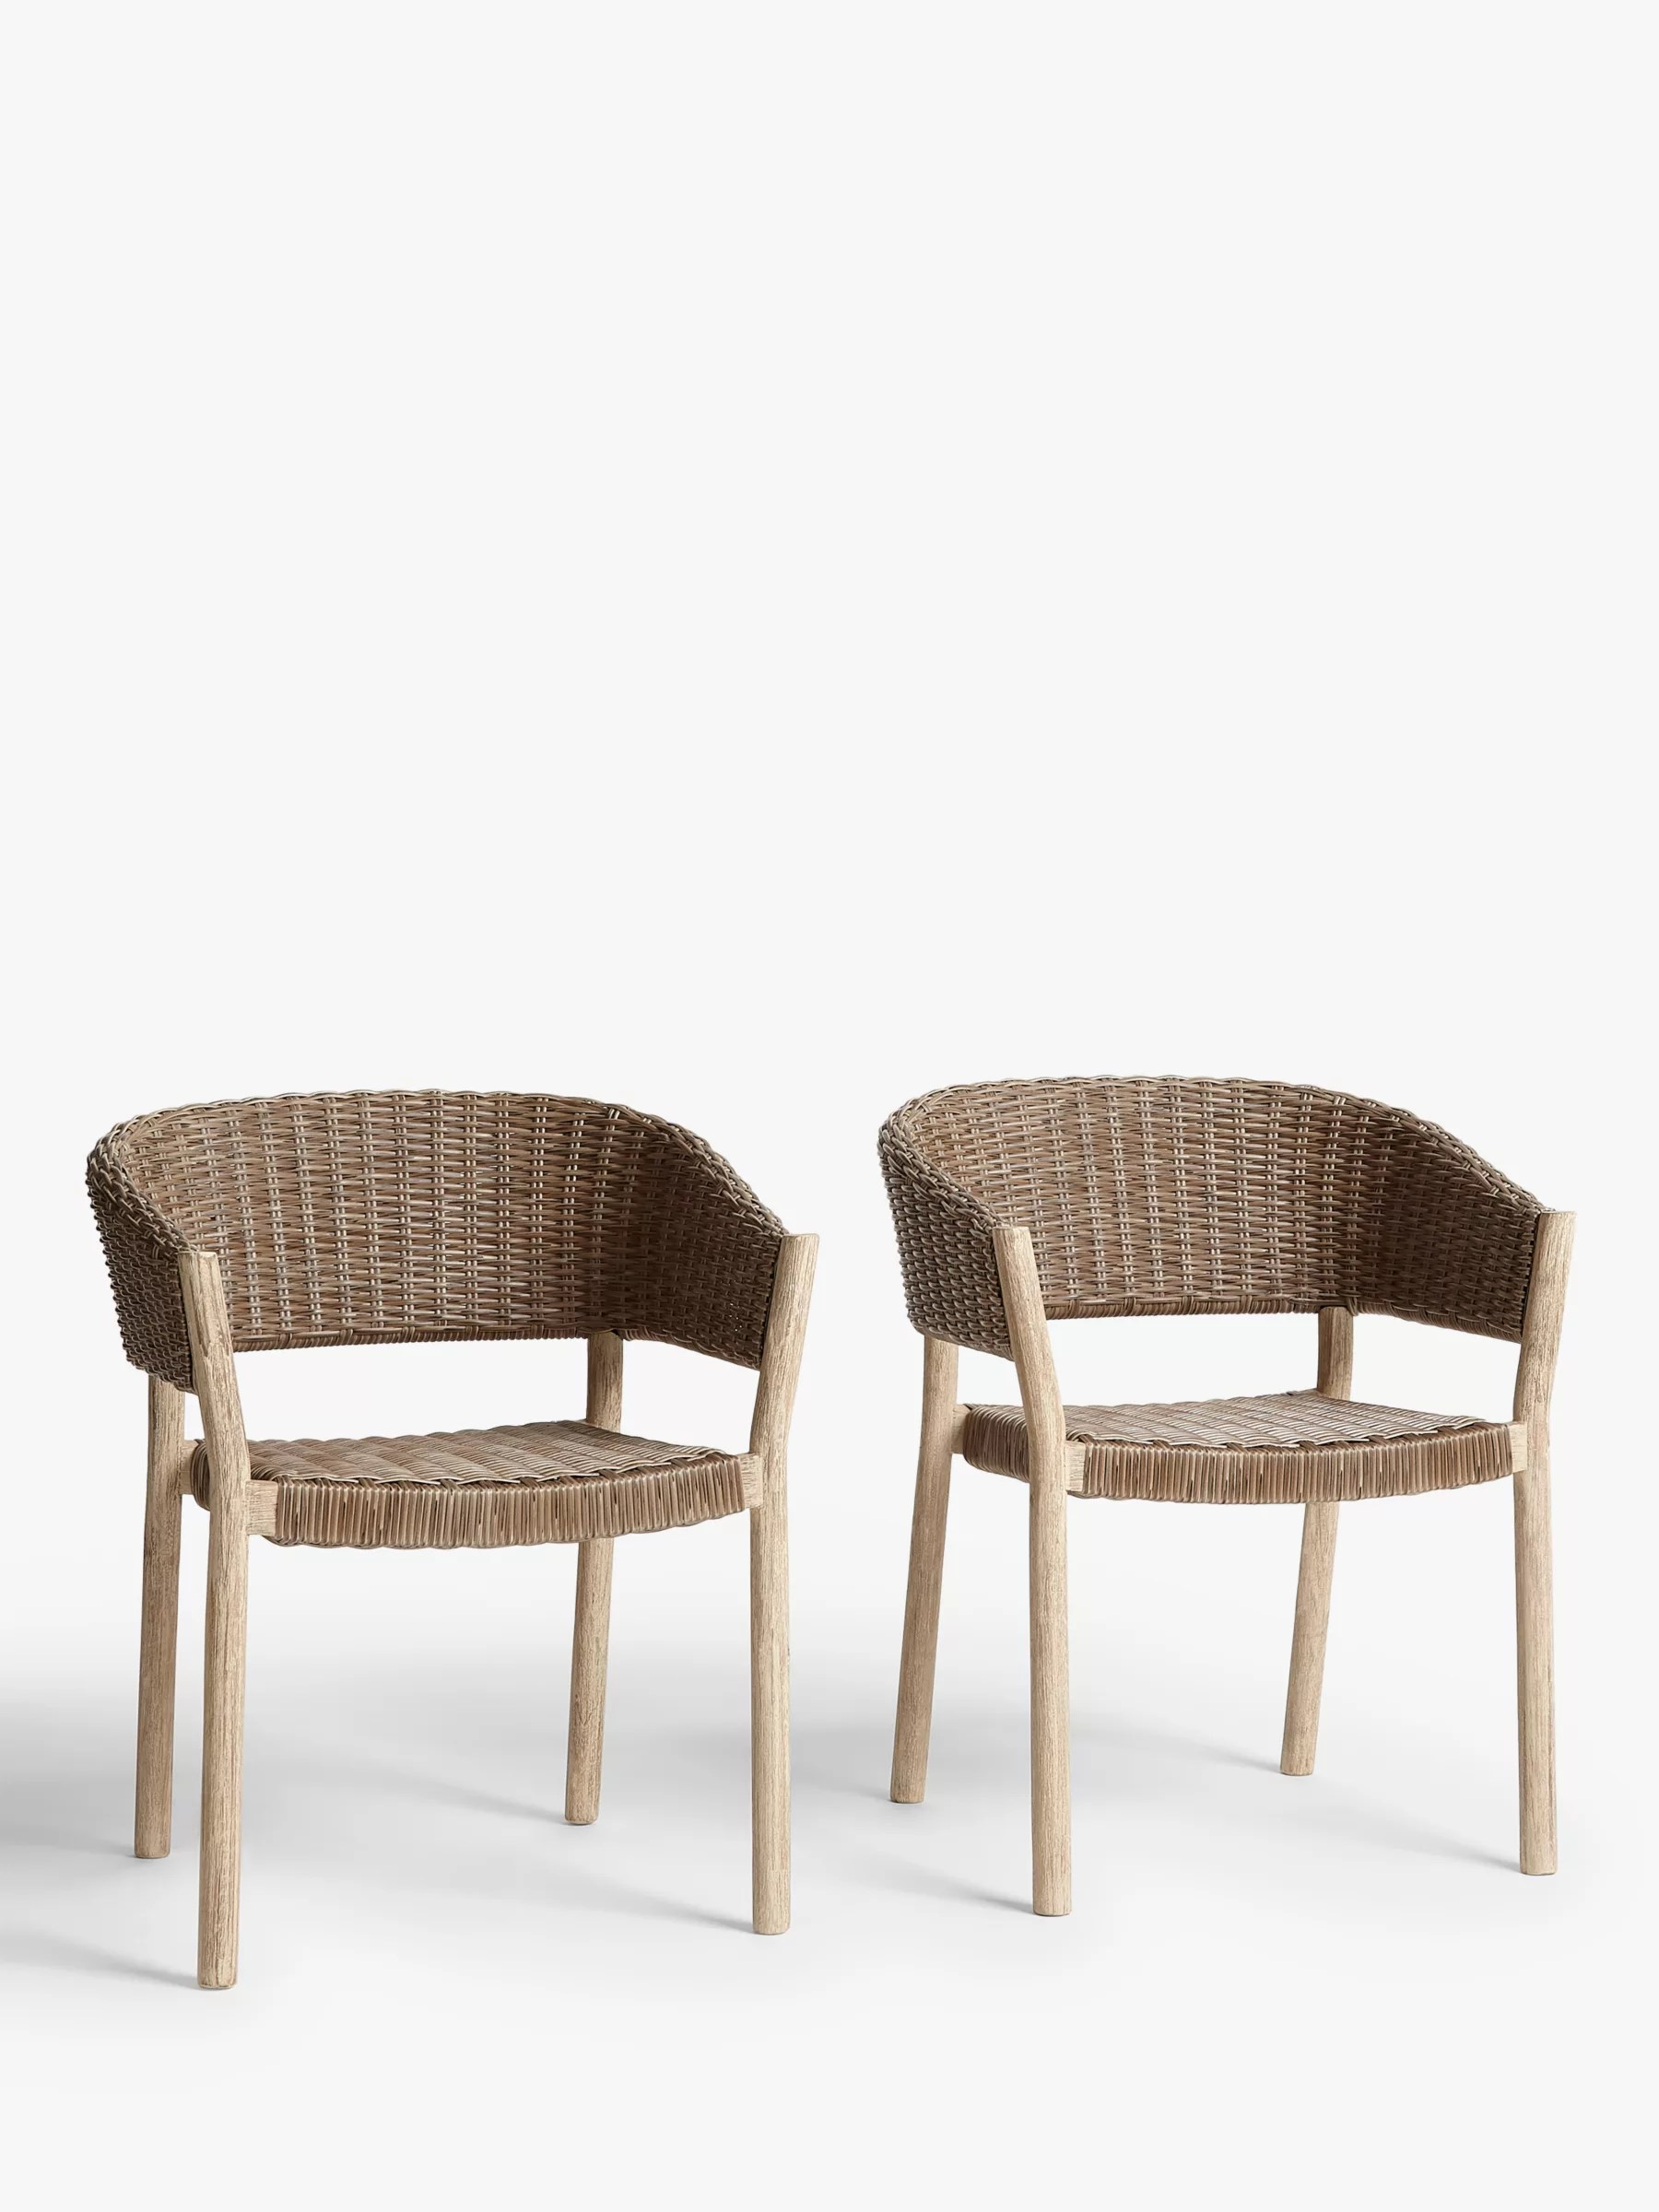 Woven Dining Chair Croft Collection Burford Garden Woven Dining Chairs Set Of 2 Fsc